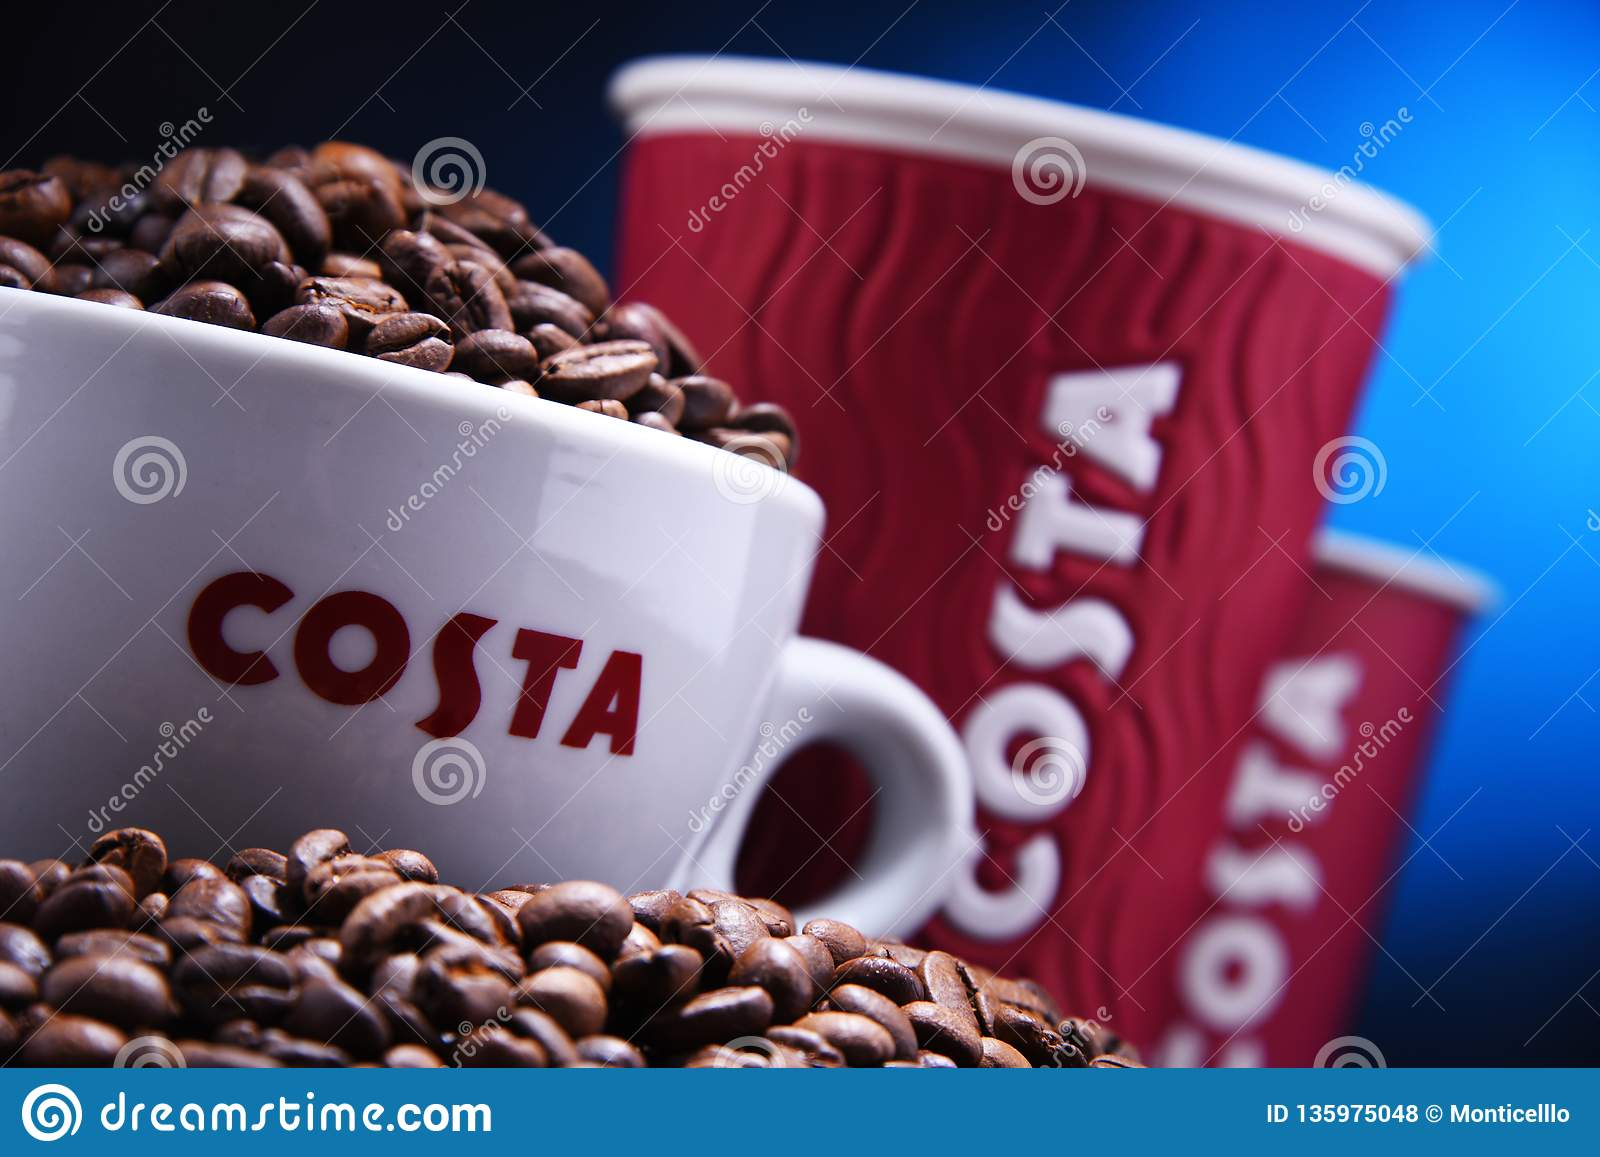 cups of costa coffee